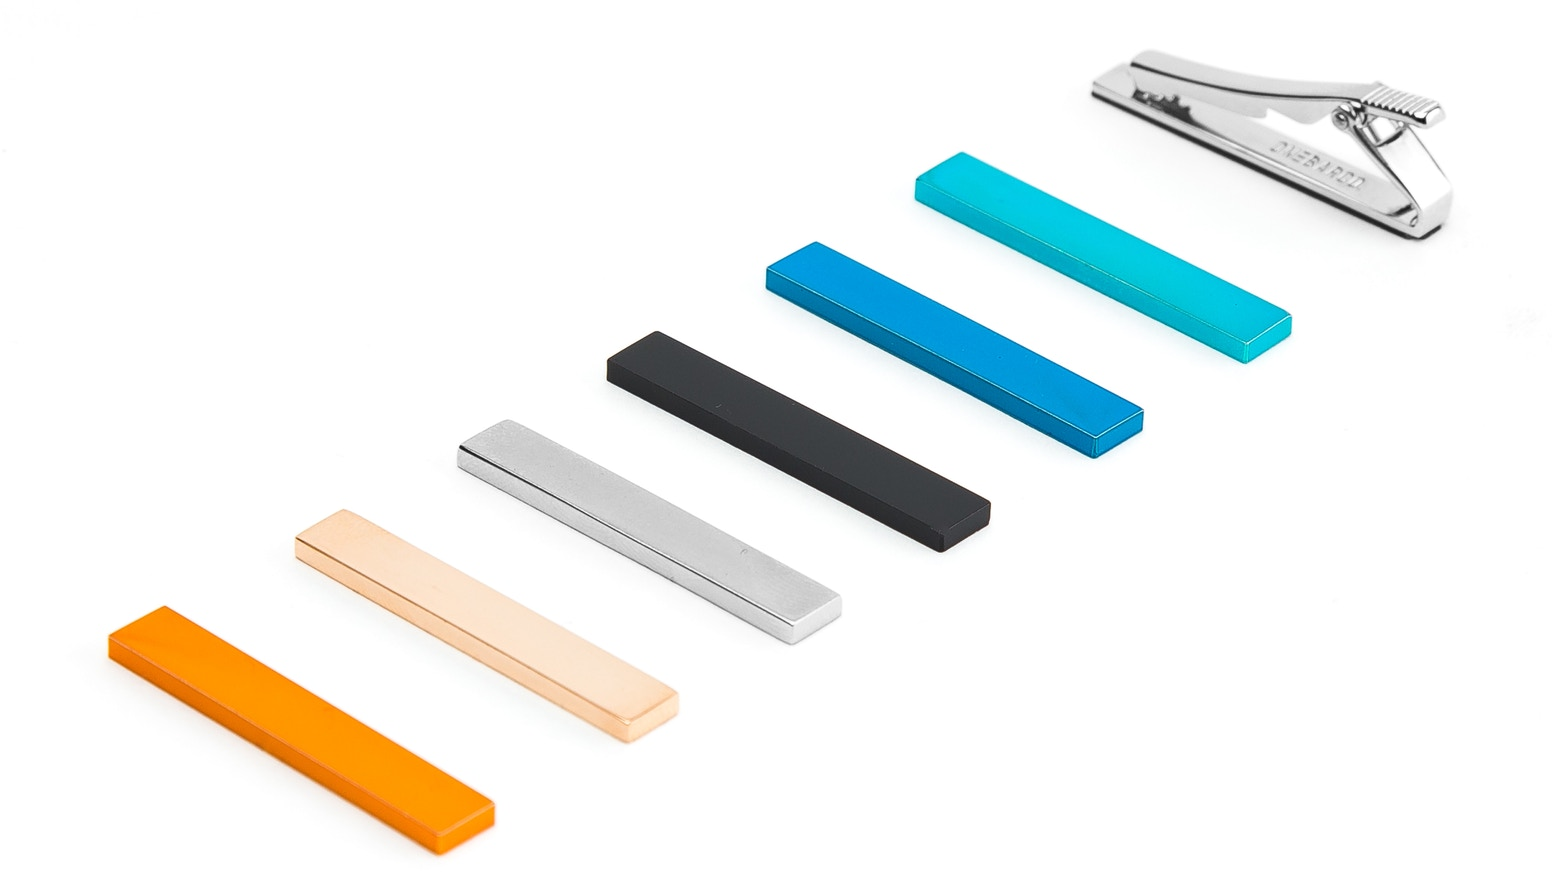 A patent pending magnetic interchangeable tie bar with endless options.  It's the only tie bar you will ever need - change your look by simply snapping on a cover! ORDER BELOW!